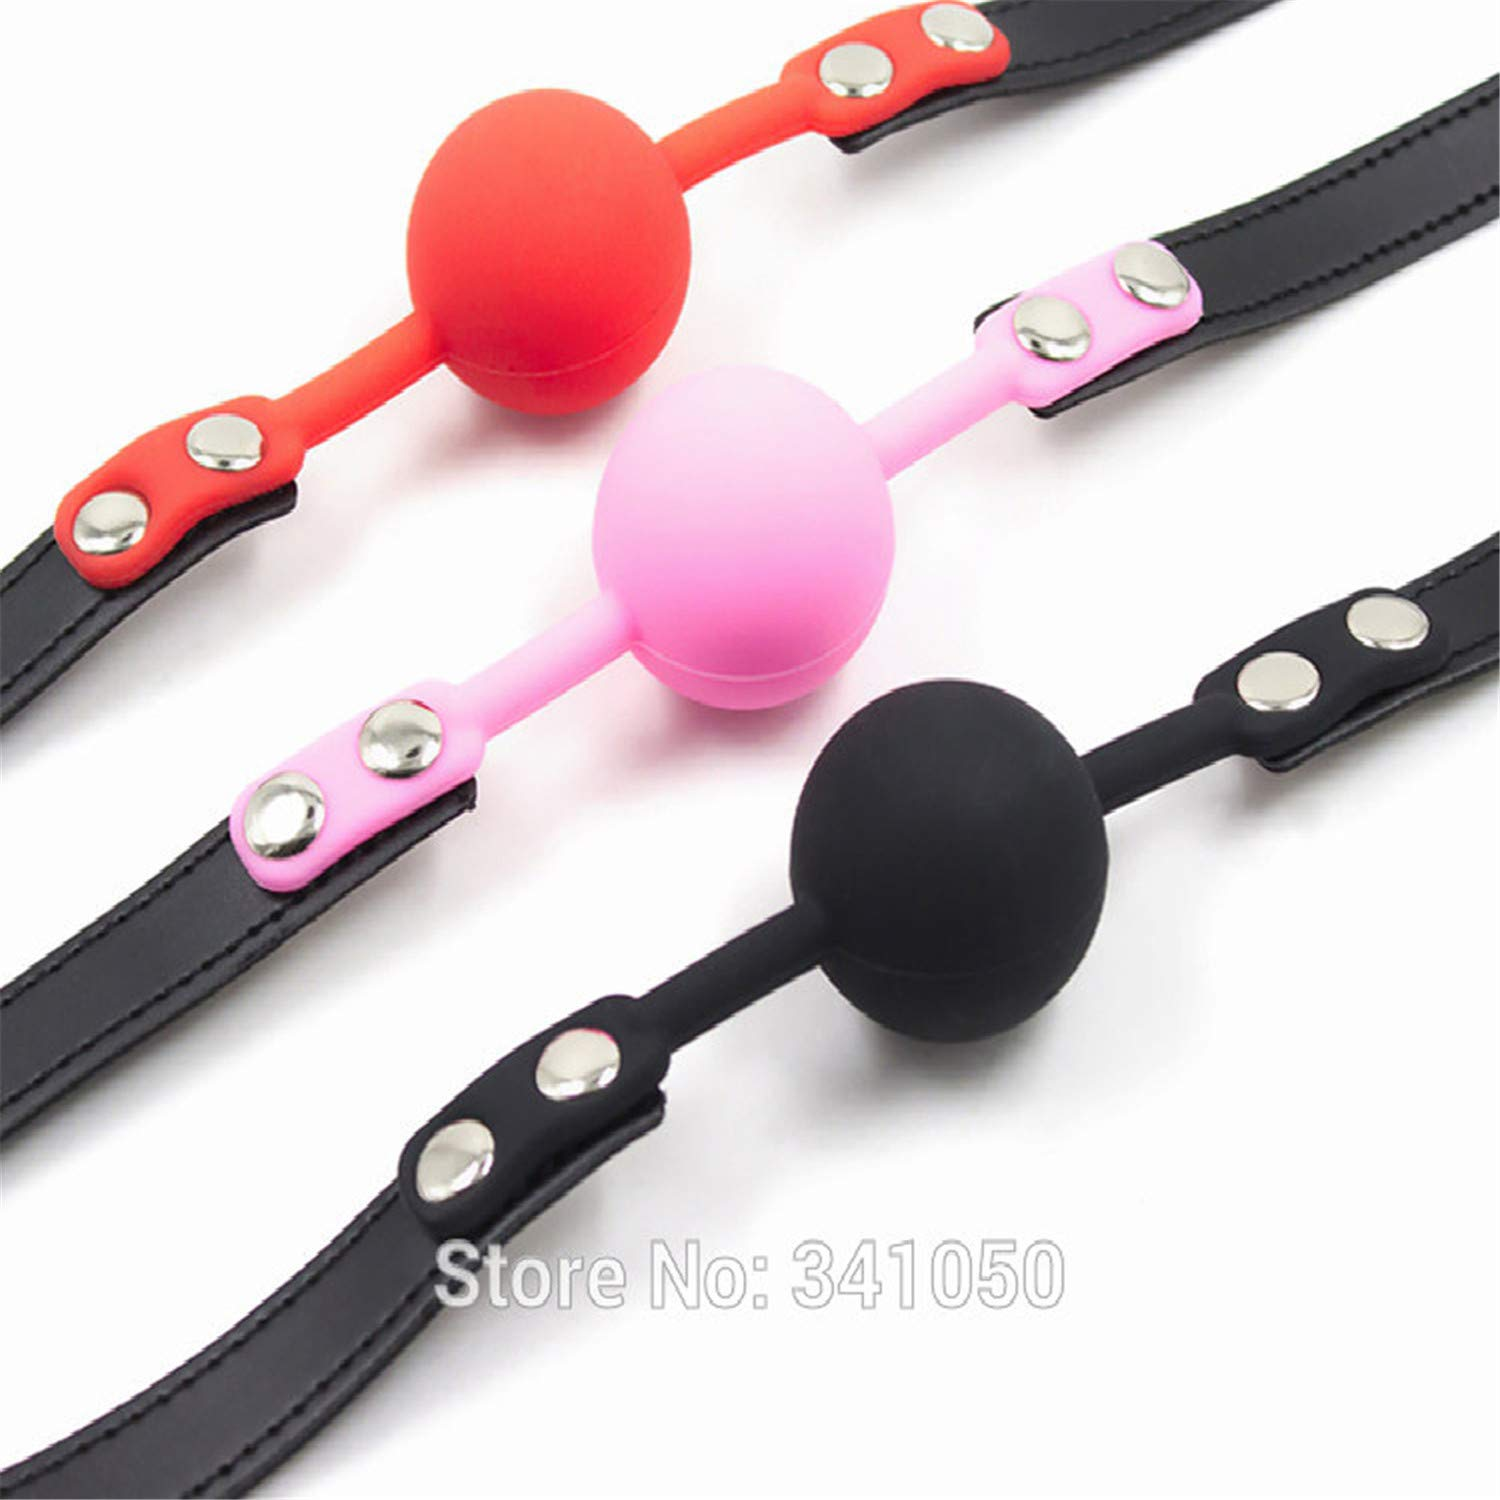 Amazon.com: spyman childrens-party-favor-sets Adult Games 3 Colors  Rubber&Pu Leather Erotic Toys Silicone Ball Gag Open Mouth Gag Sex Toy Slave  Gag for ...